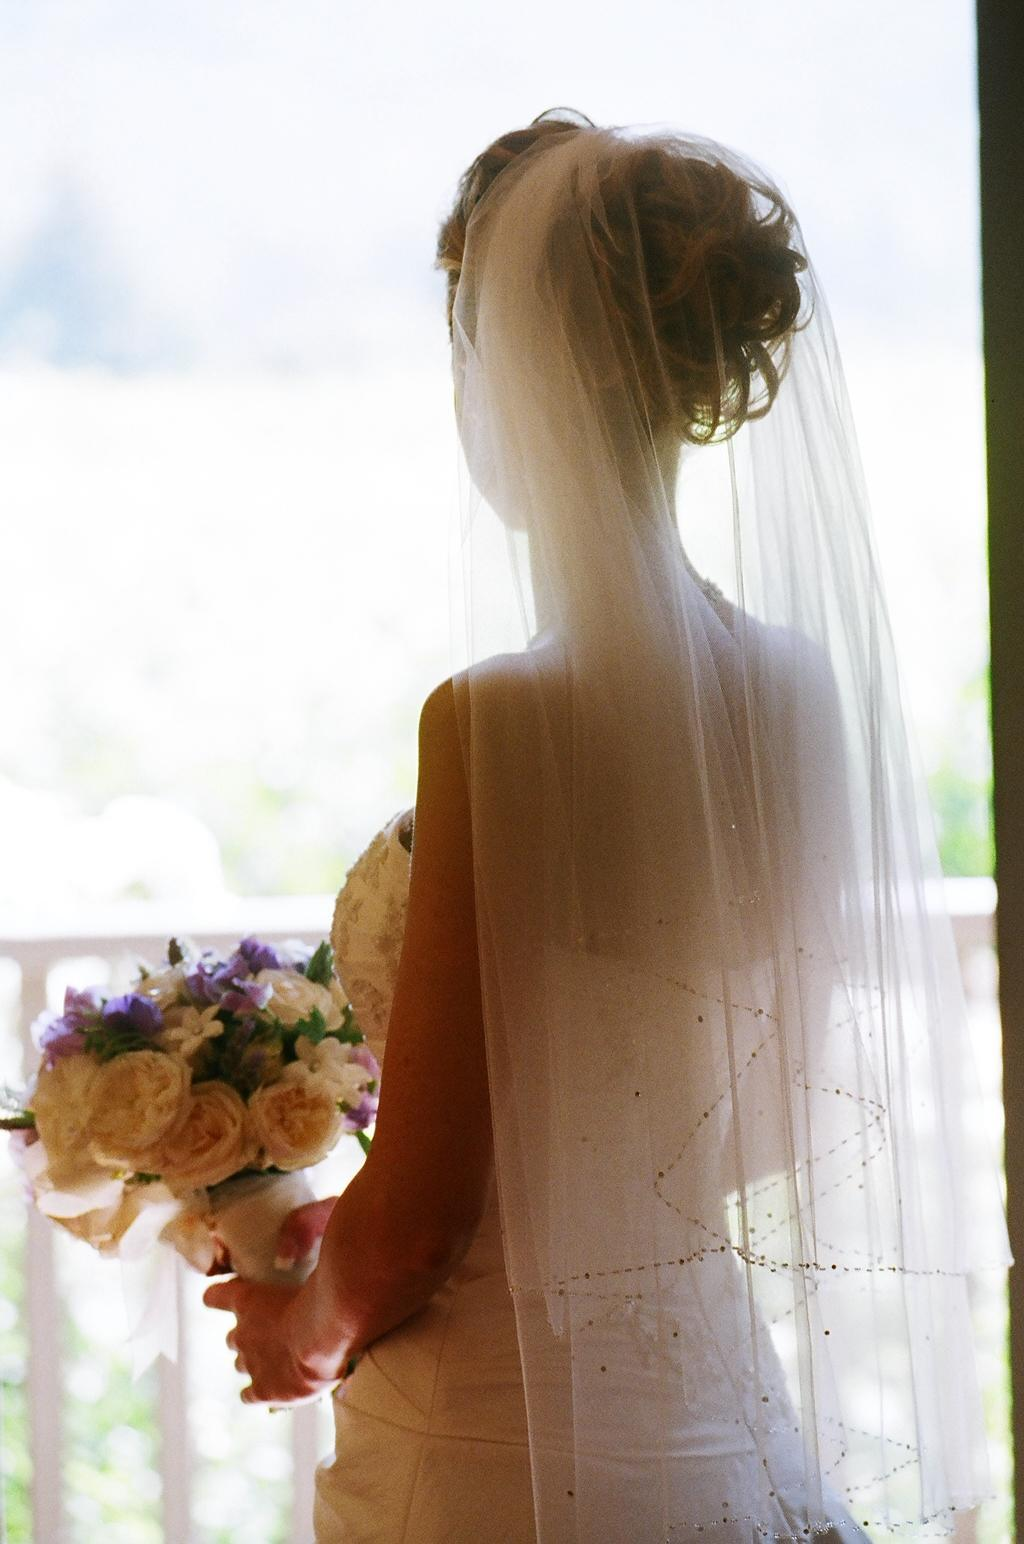 Flowers & Decor, Veils, Fashion, Flowers, Veil, Flower Wedding Dresses